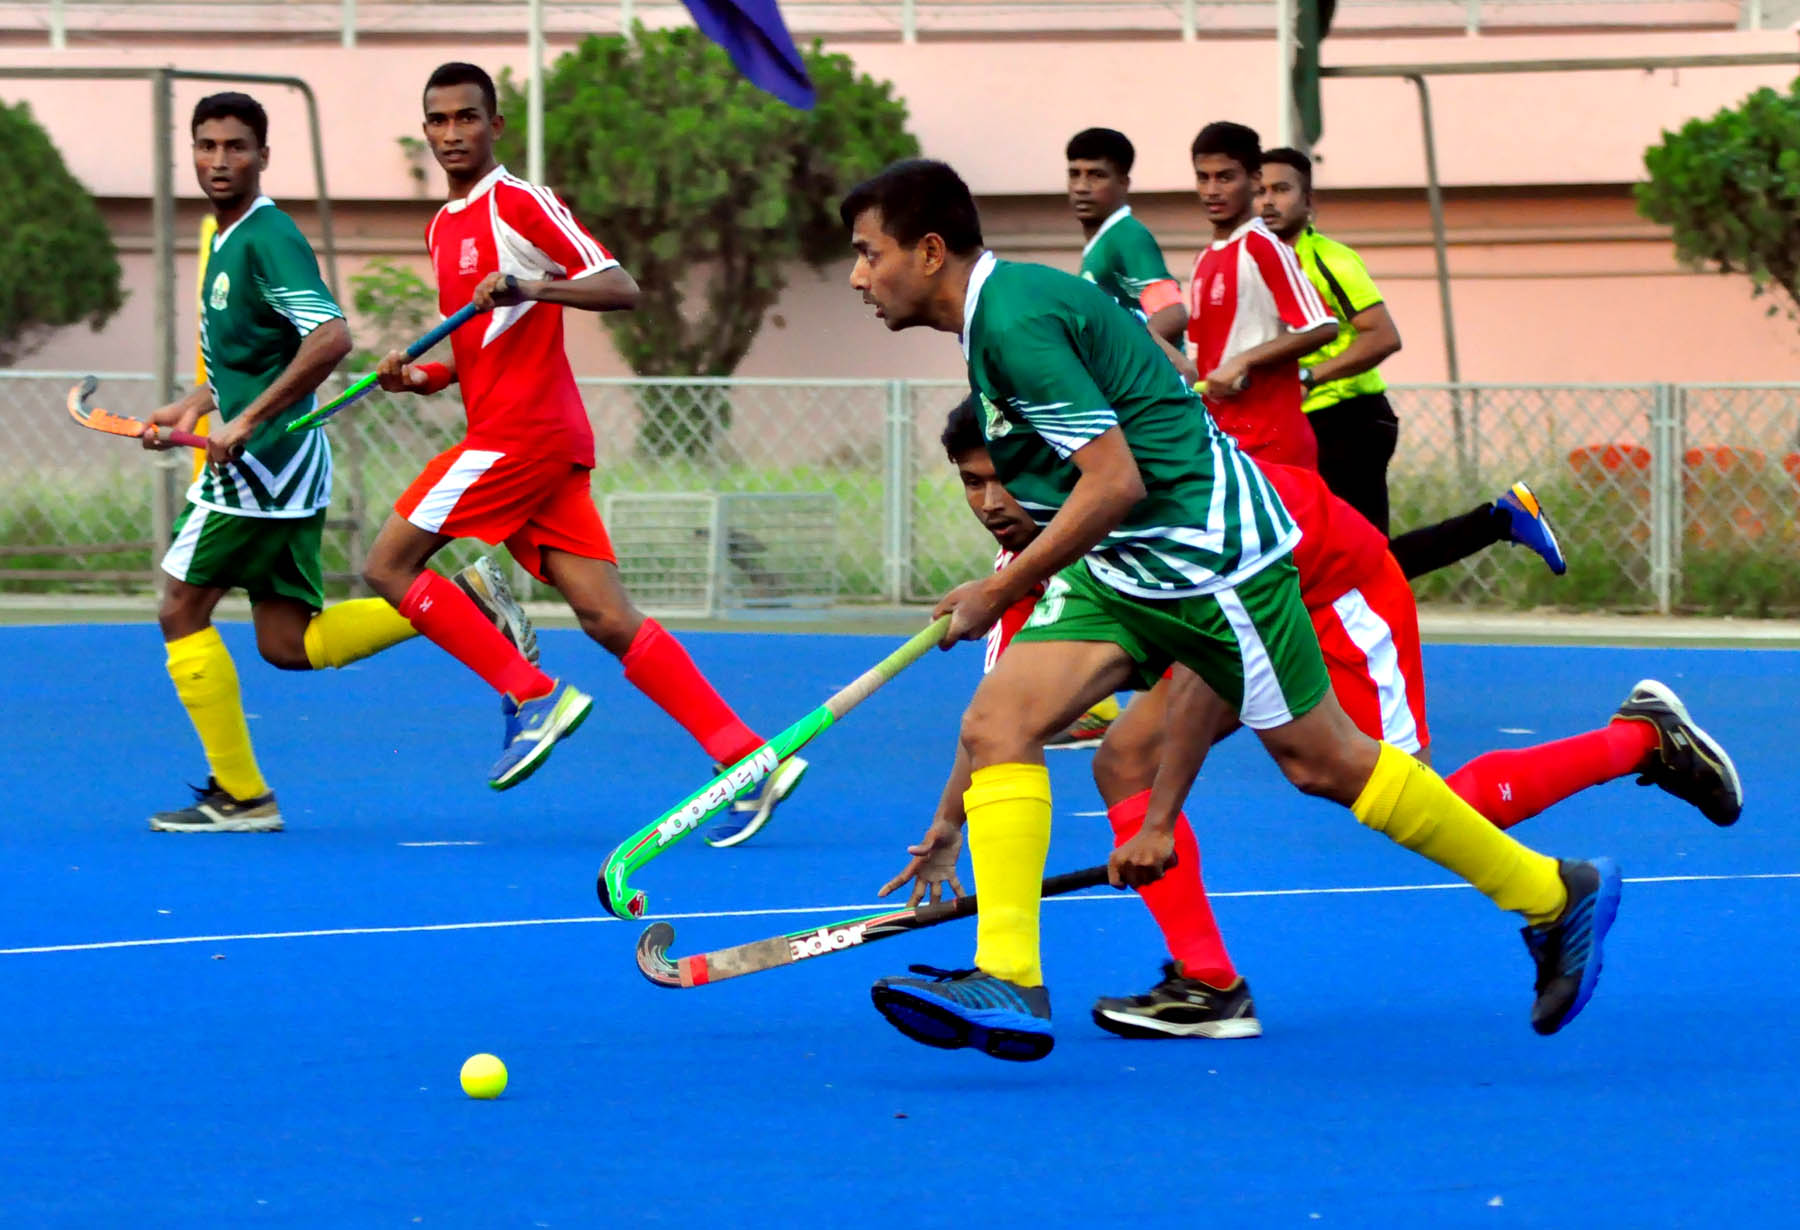 An action from the match of Khaza Rahmatullah Club Cup Hockey between Victoria Sporting Club and Ajax Sporting Club at the Moulana Bhashani National Hockey Stadium on Tuesday.